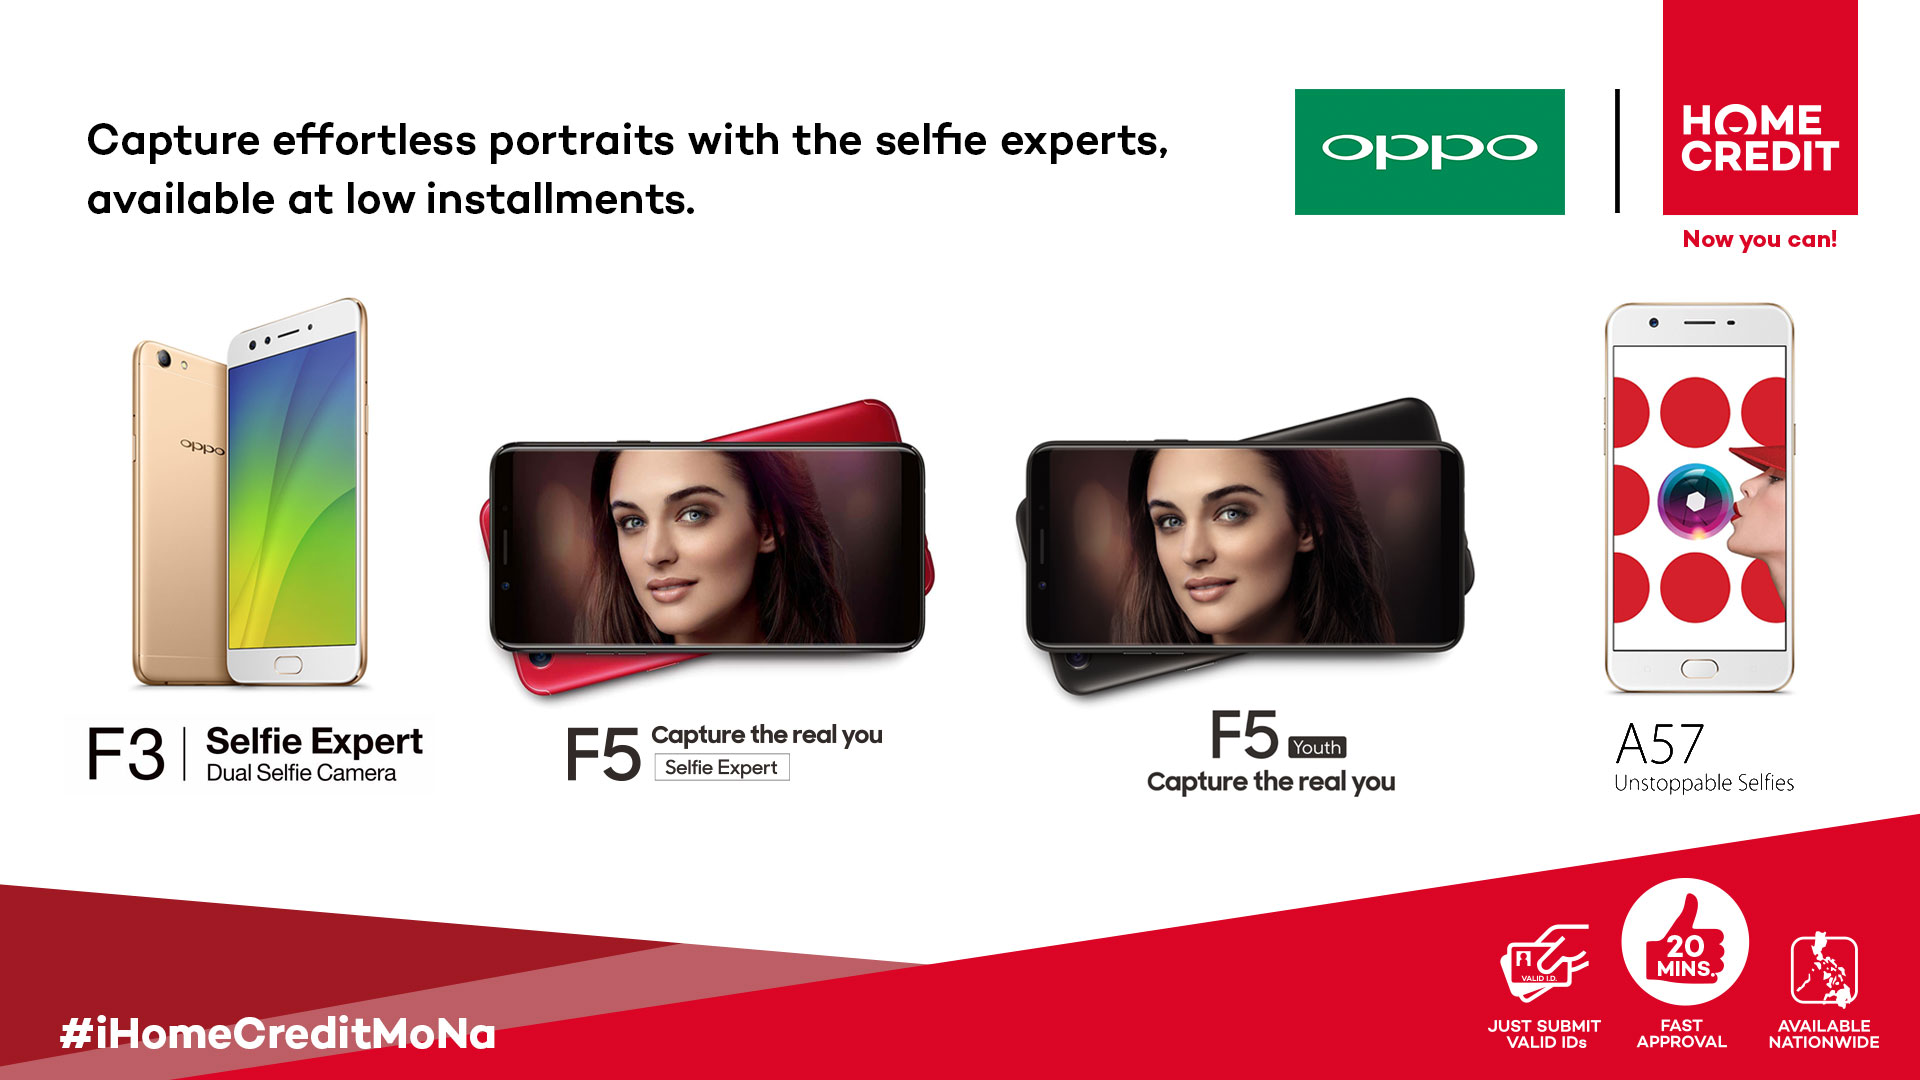 Home Credits Shares the Love with OPPO, at 0% Interest